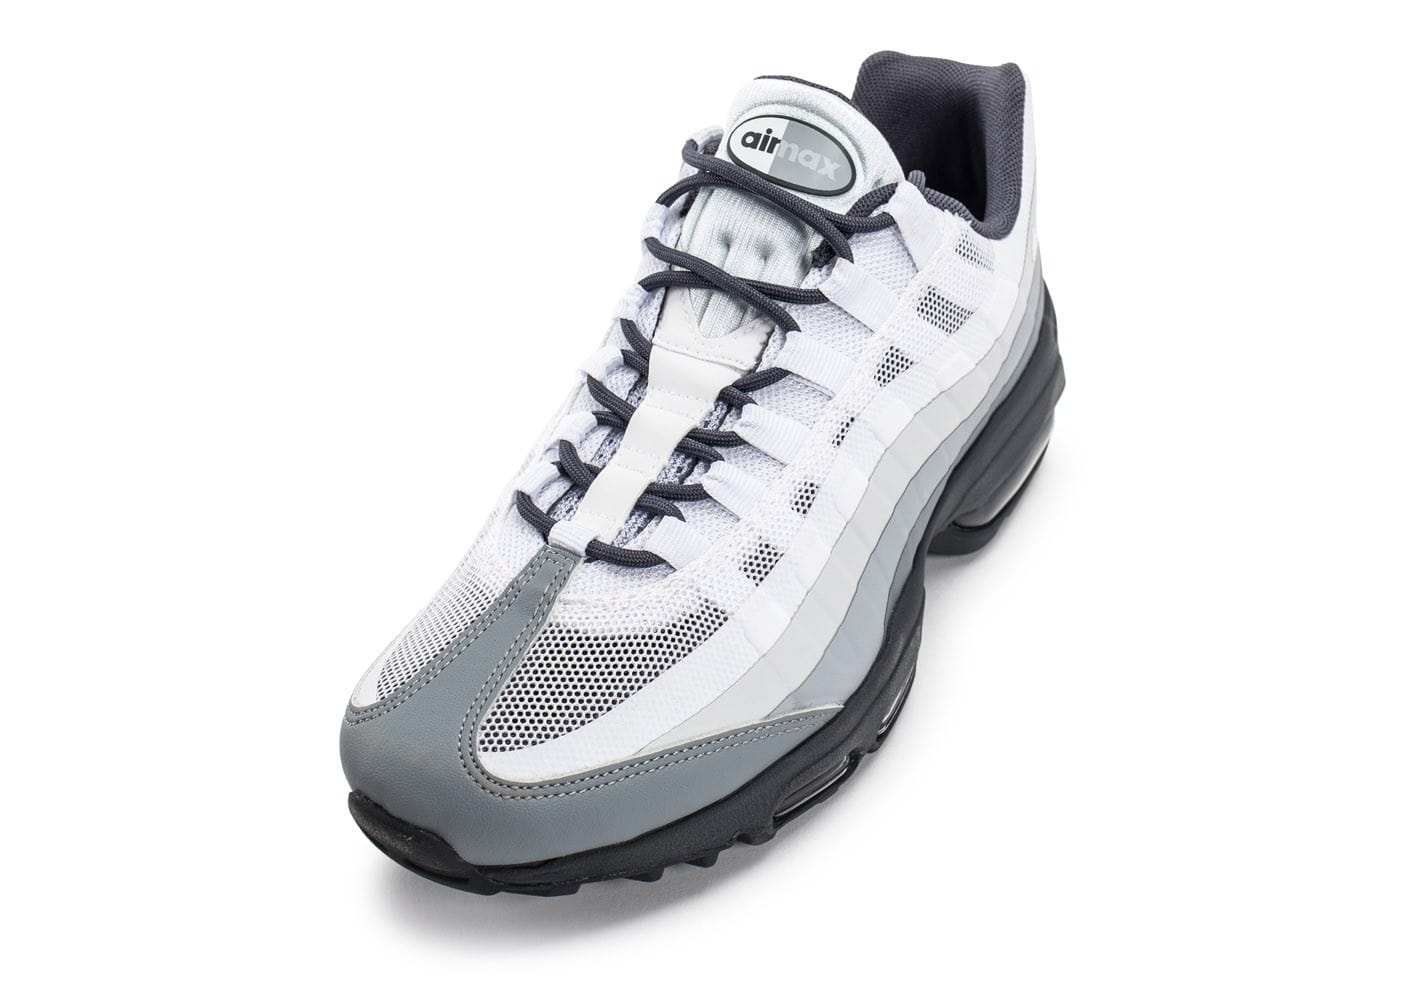 promo code f9cea fac7d ... chaussures nike air max 95 ultra blanche et grise vue arriere .